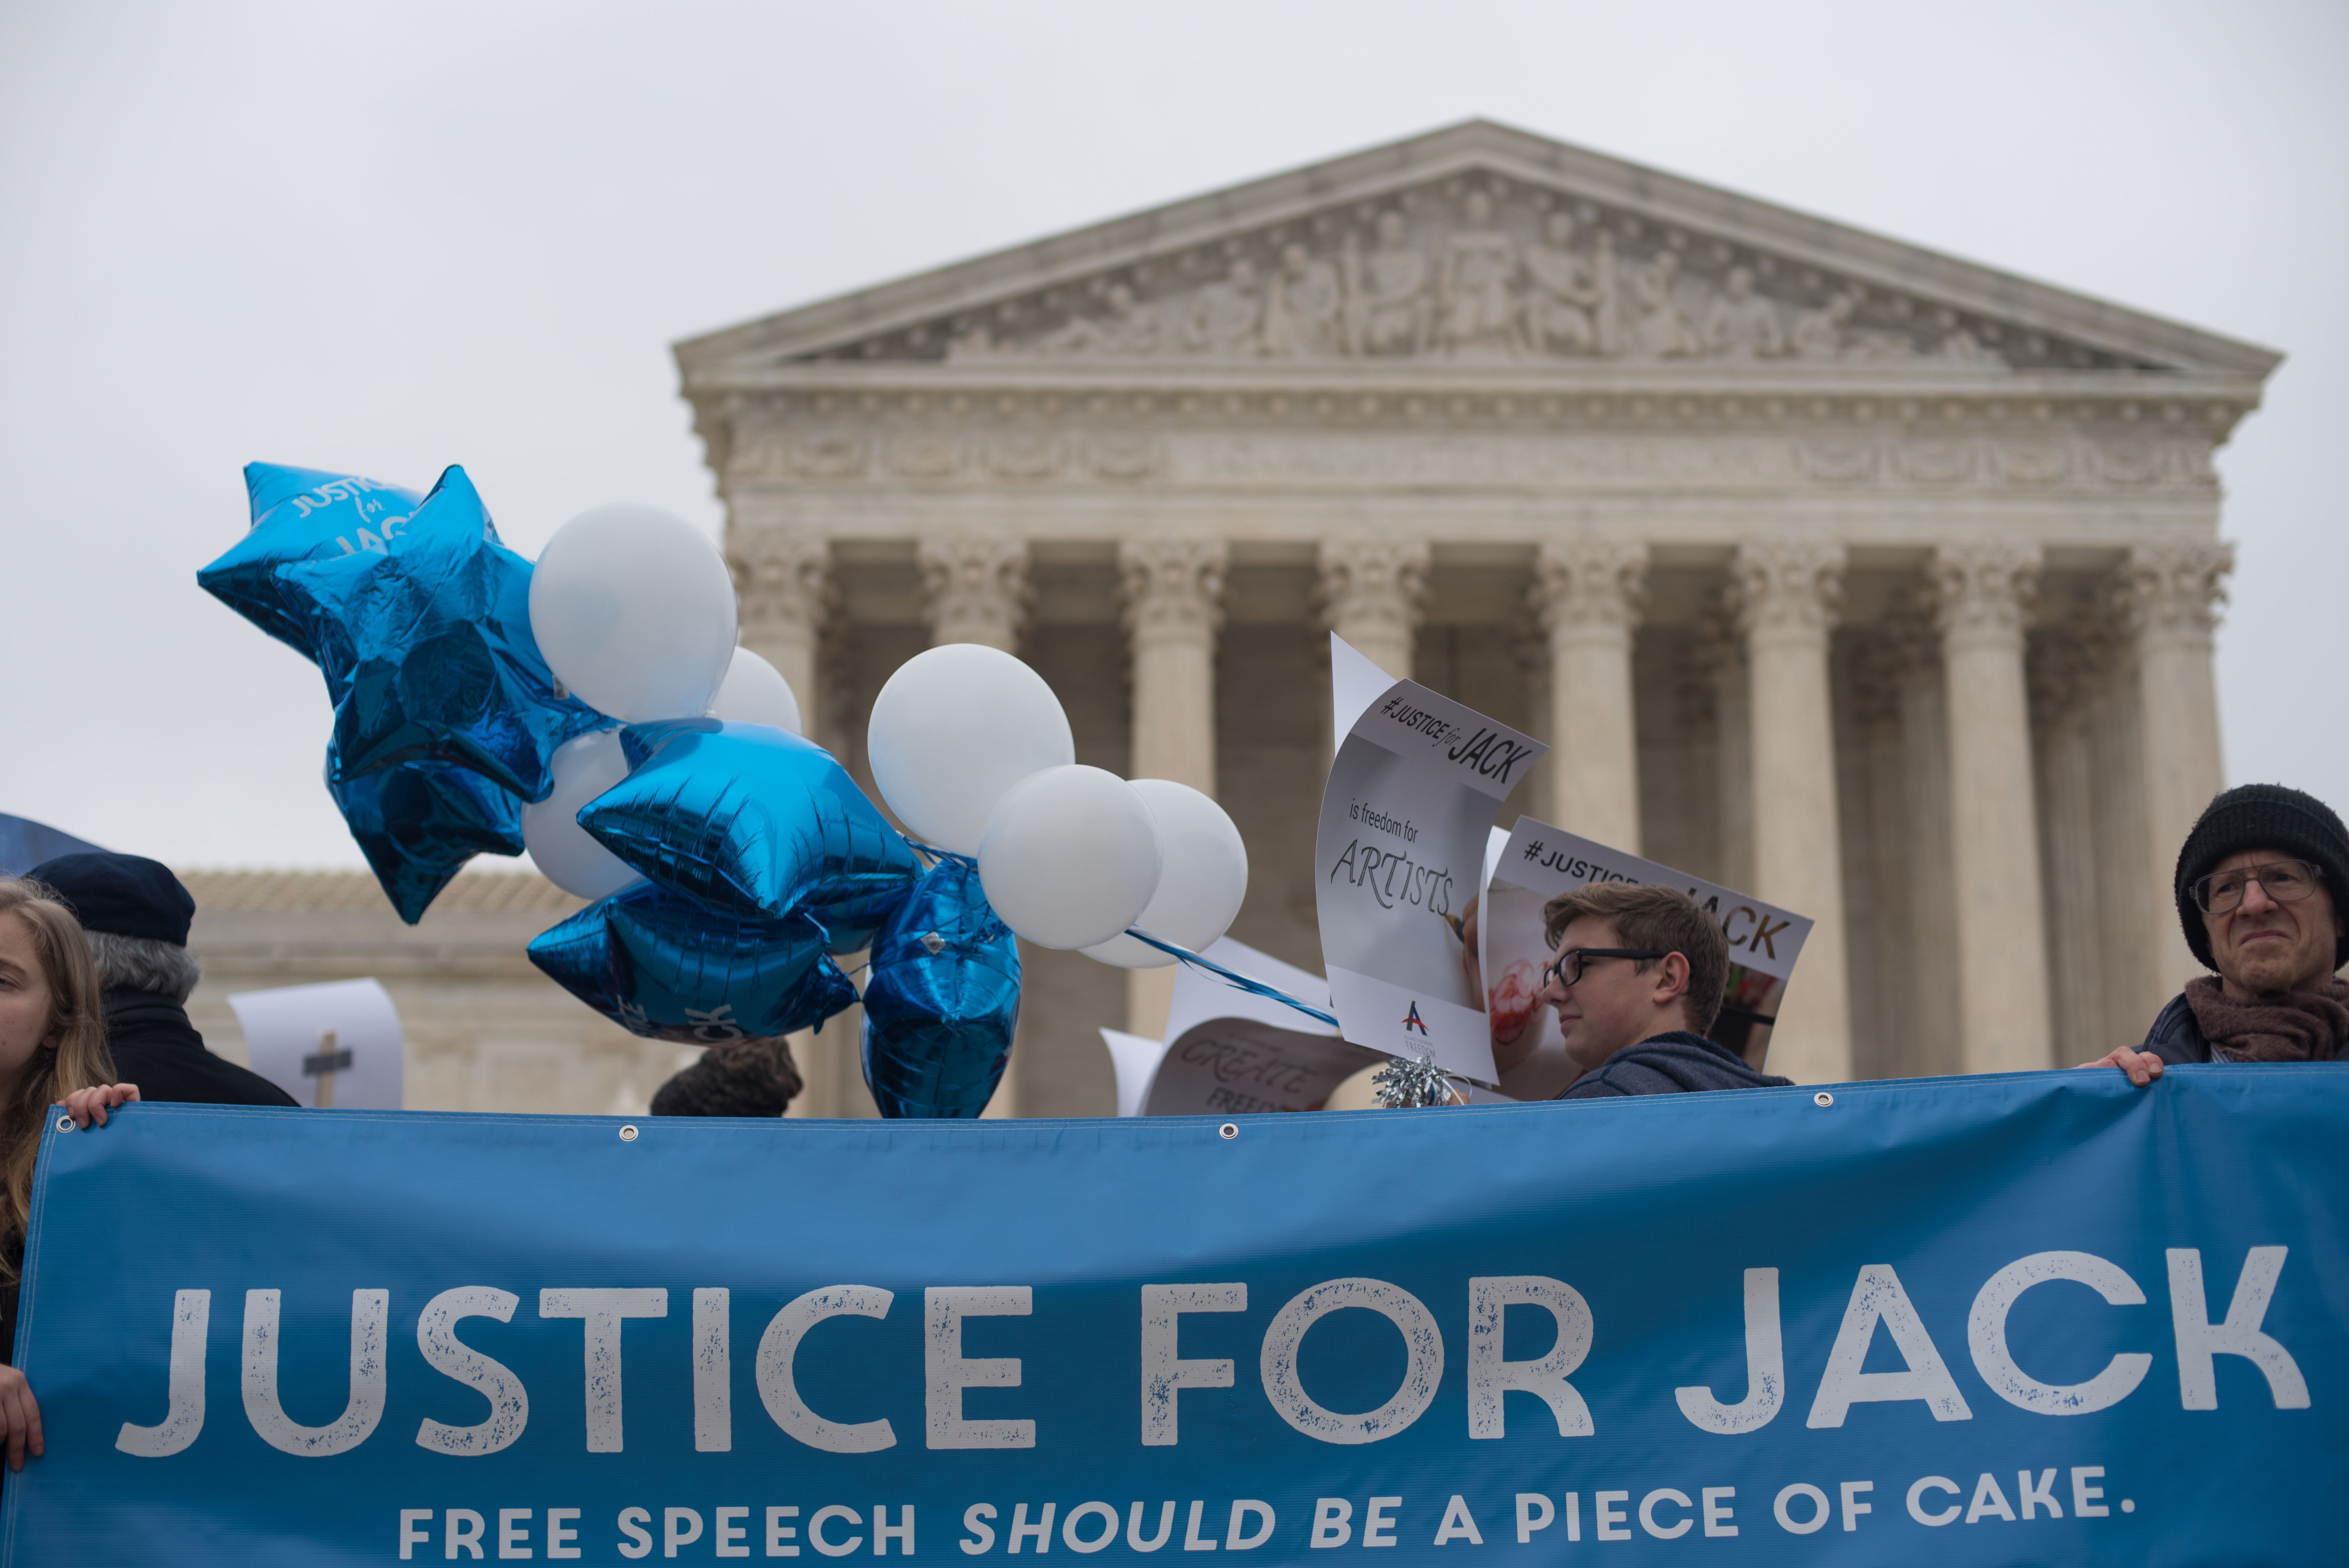 People rally for Jack Phillips, owner of Masterpiece Cake in Colorado, outside the US Supreme Court before Masterpiece Cakeshop vs. Colorado Civil Rights Commission is heard on December 5, 2017 in Washington, DC. (MARI MATSURI/AFP via Getty Images)